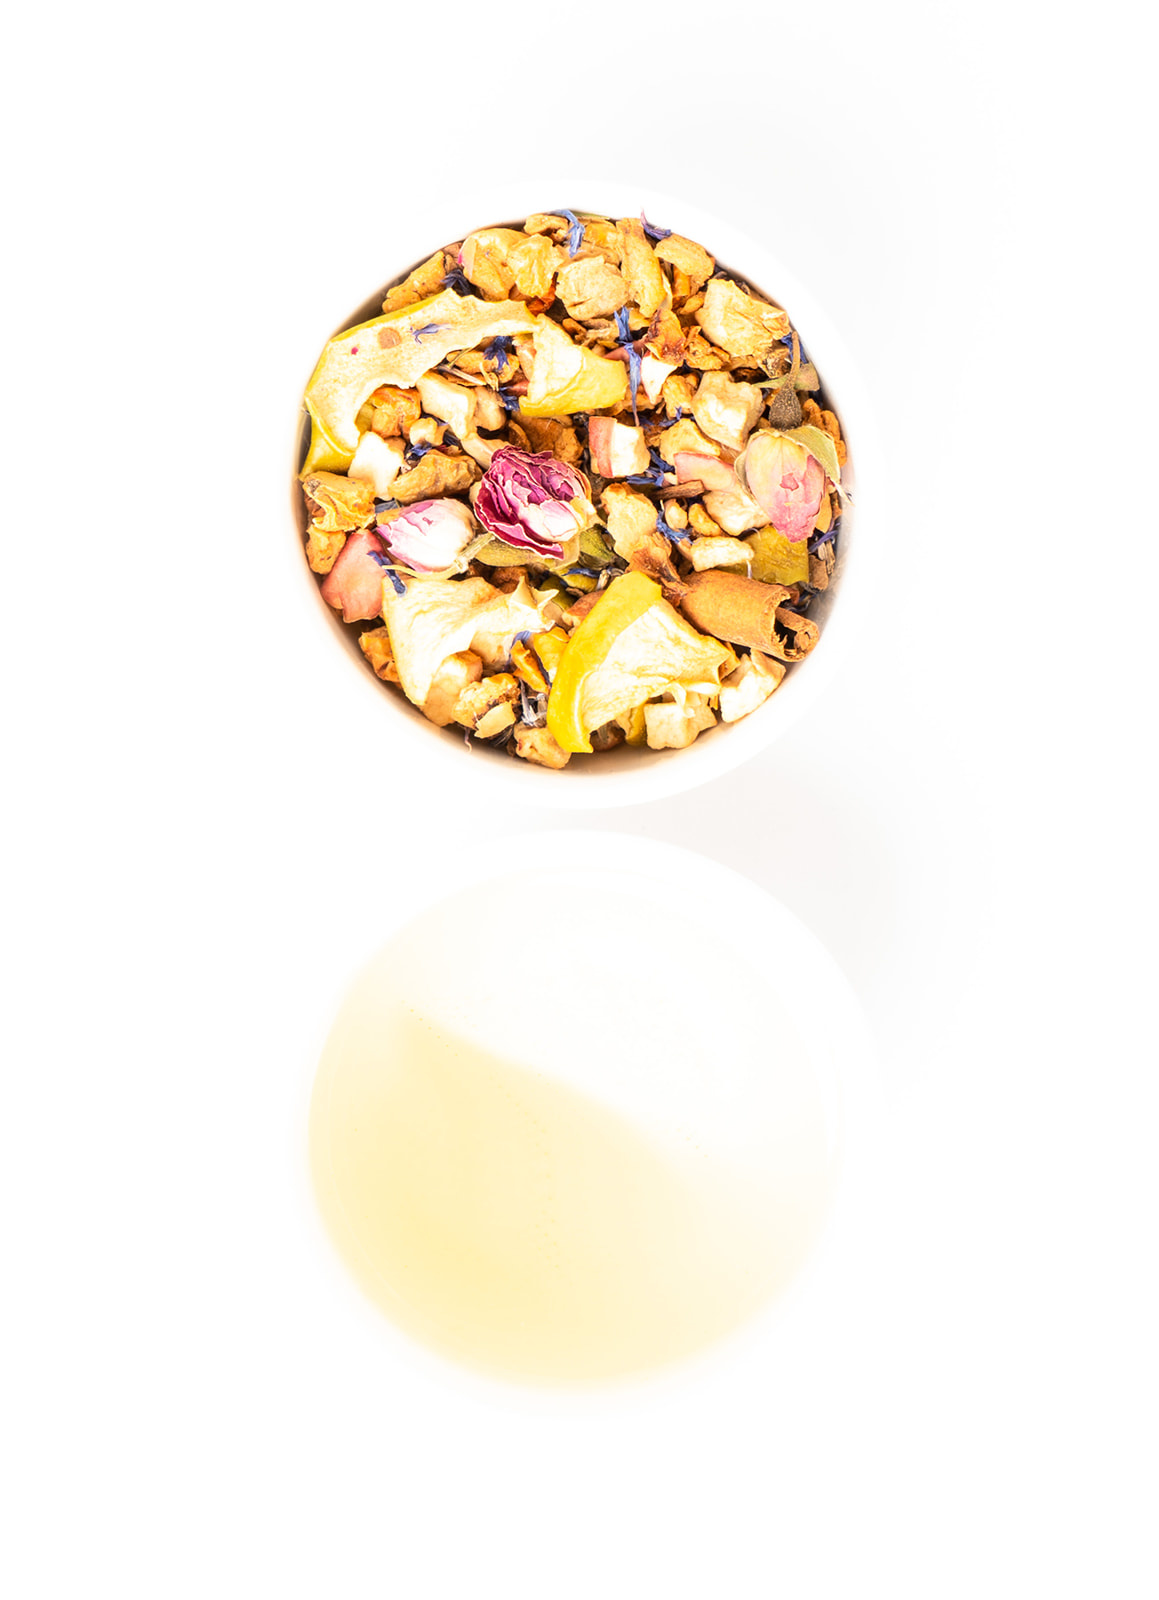 Apple Rose with whole pieces of Golden Smith